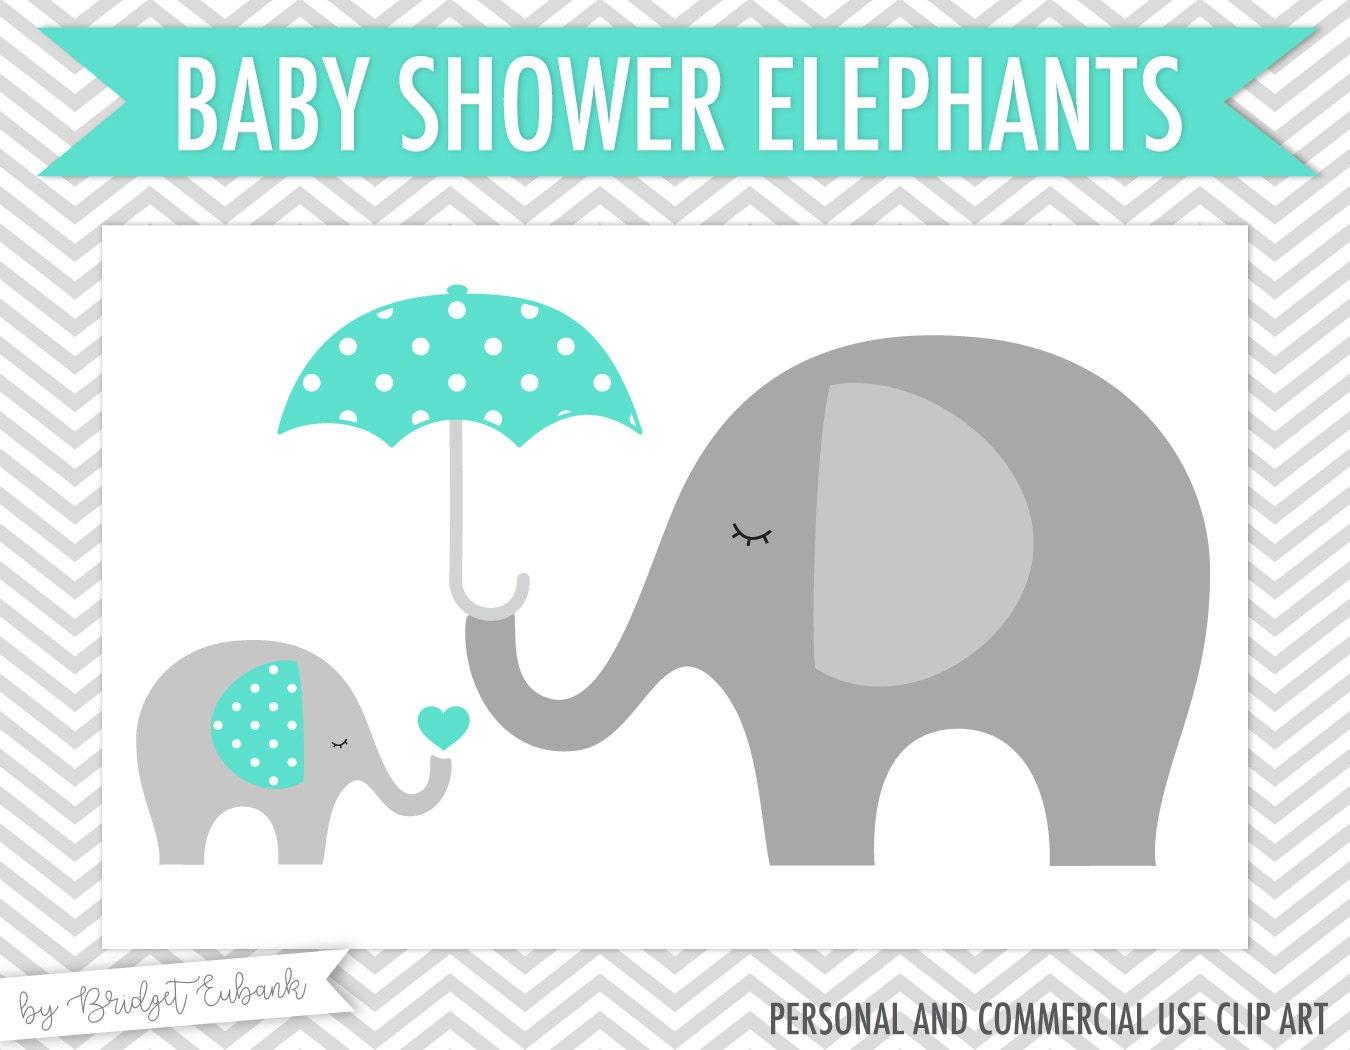 Baby Elephant Clip Art Baby Shower Baby shower clipart El...